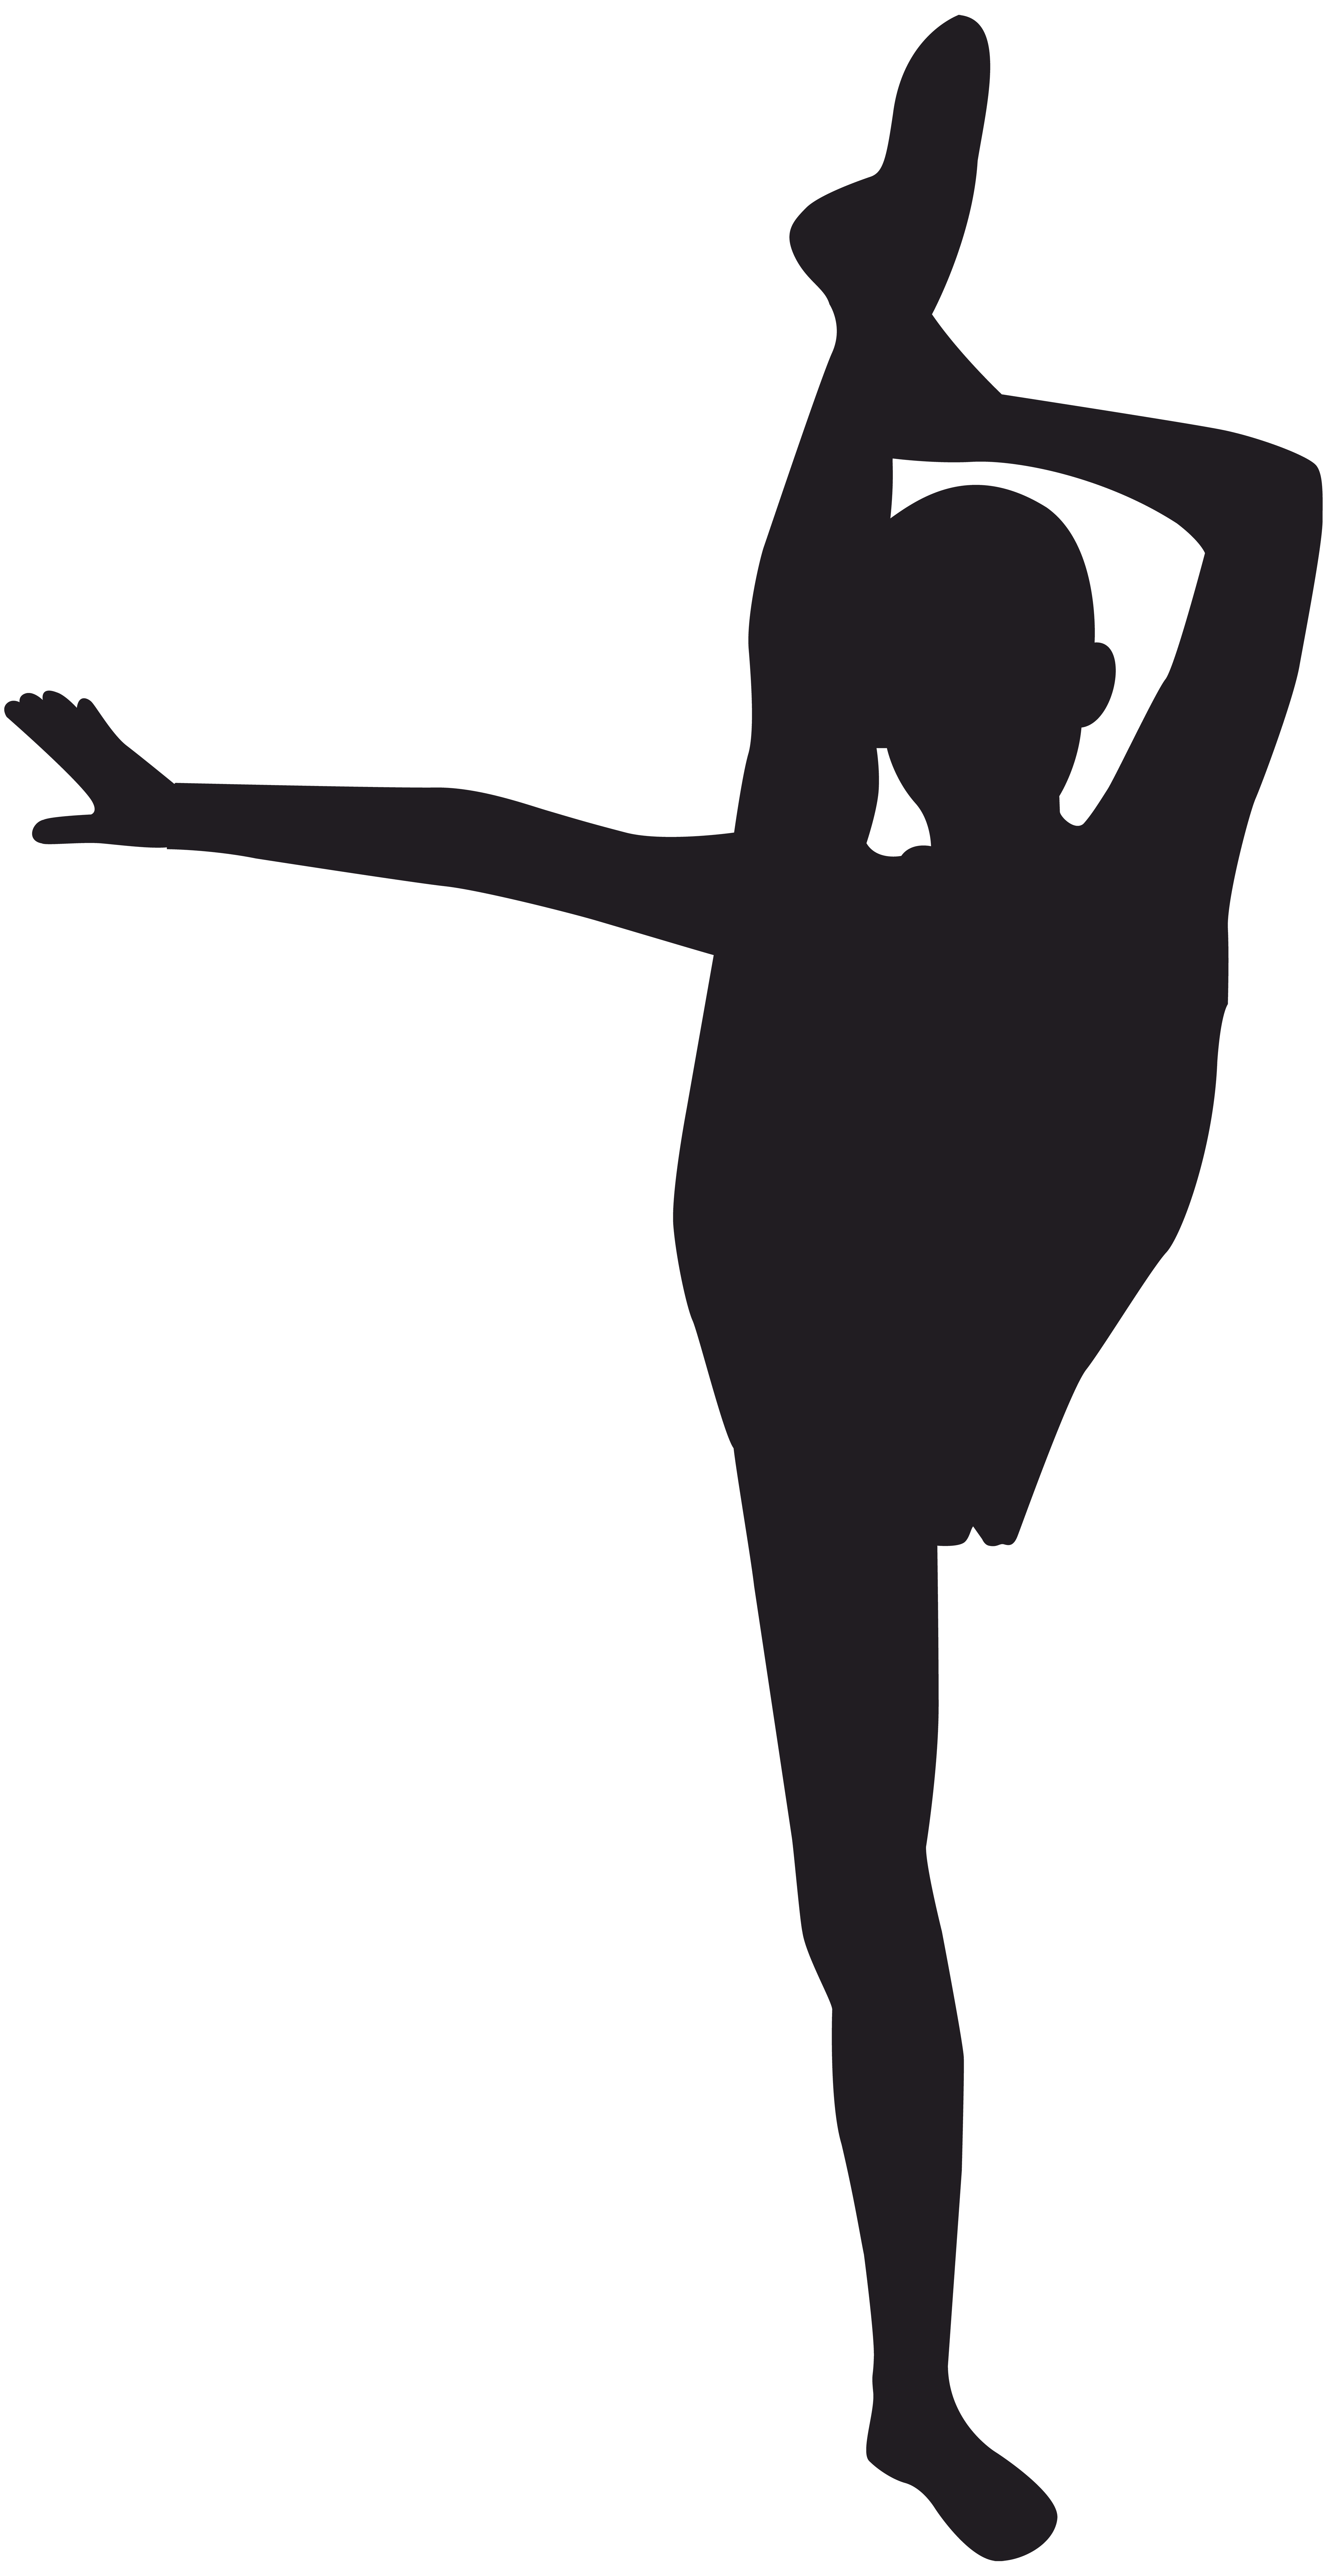 graphic free download Gymnastics Clipart Silhouette at GetDrawings